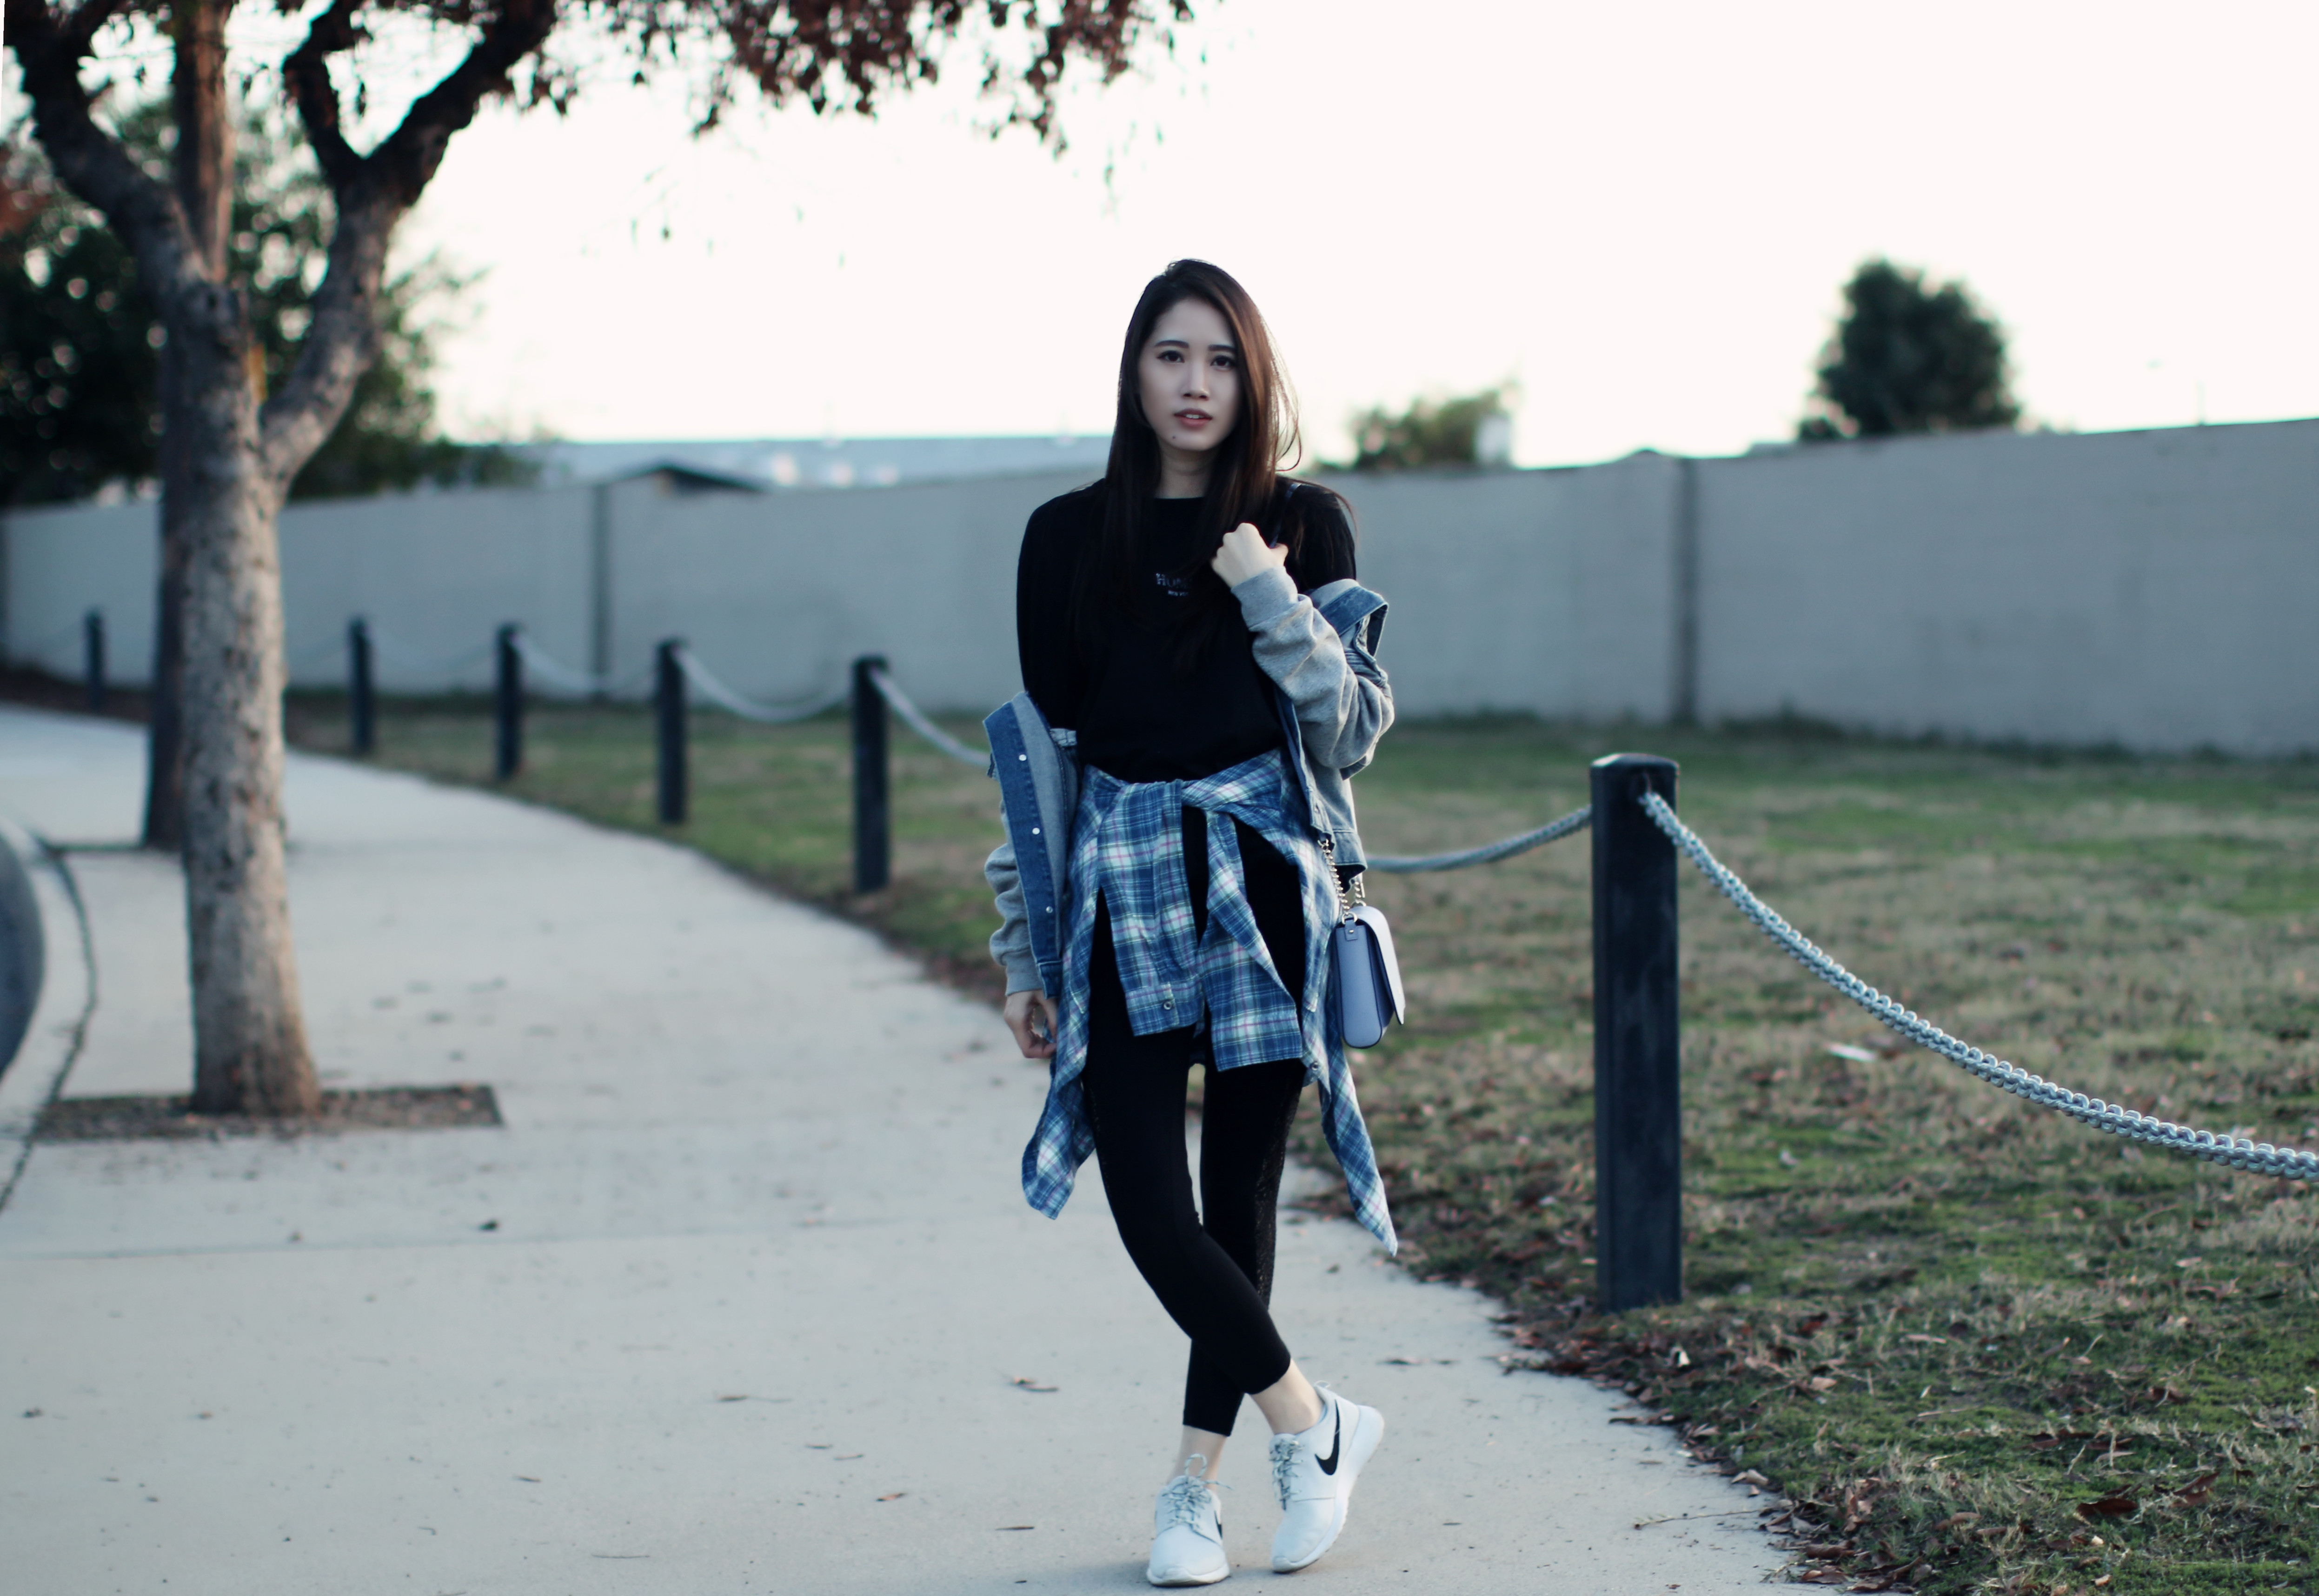 4319-ootd-fashion-style-outfitoftheday-wiwt-streetstyle-urbanoutfitters-hm-f21xme-nike-elizabeeetht-clothestoyouuu